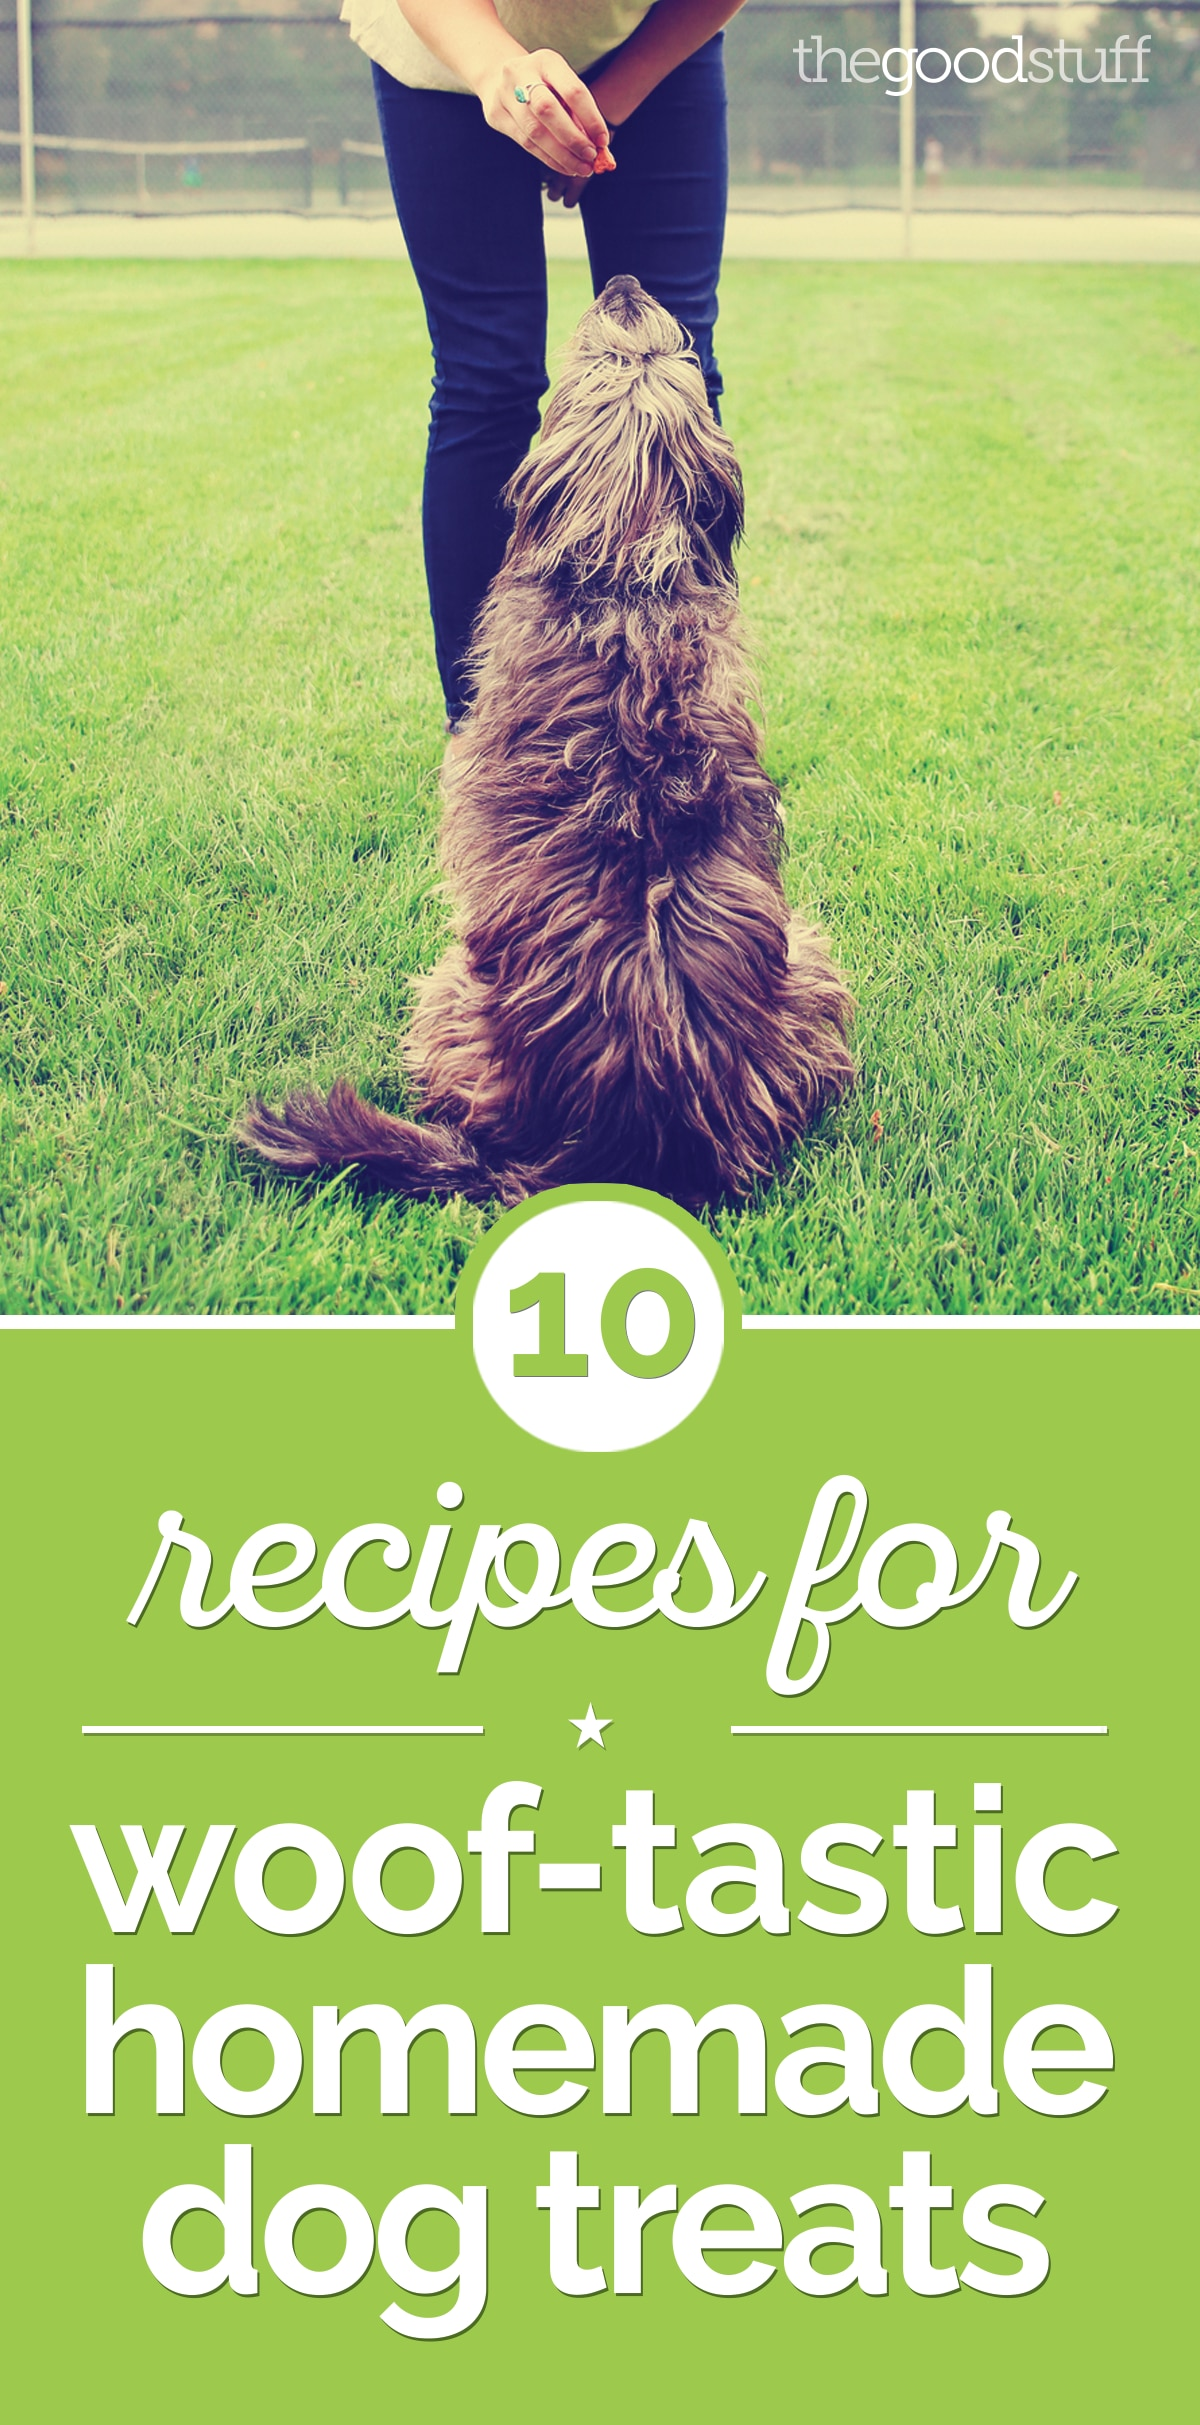 10 Recipes for Woof-Tastic Homemade Dog Treats | thegoodstuff